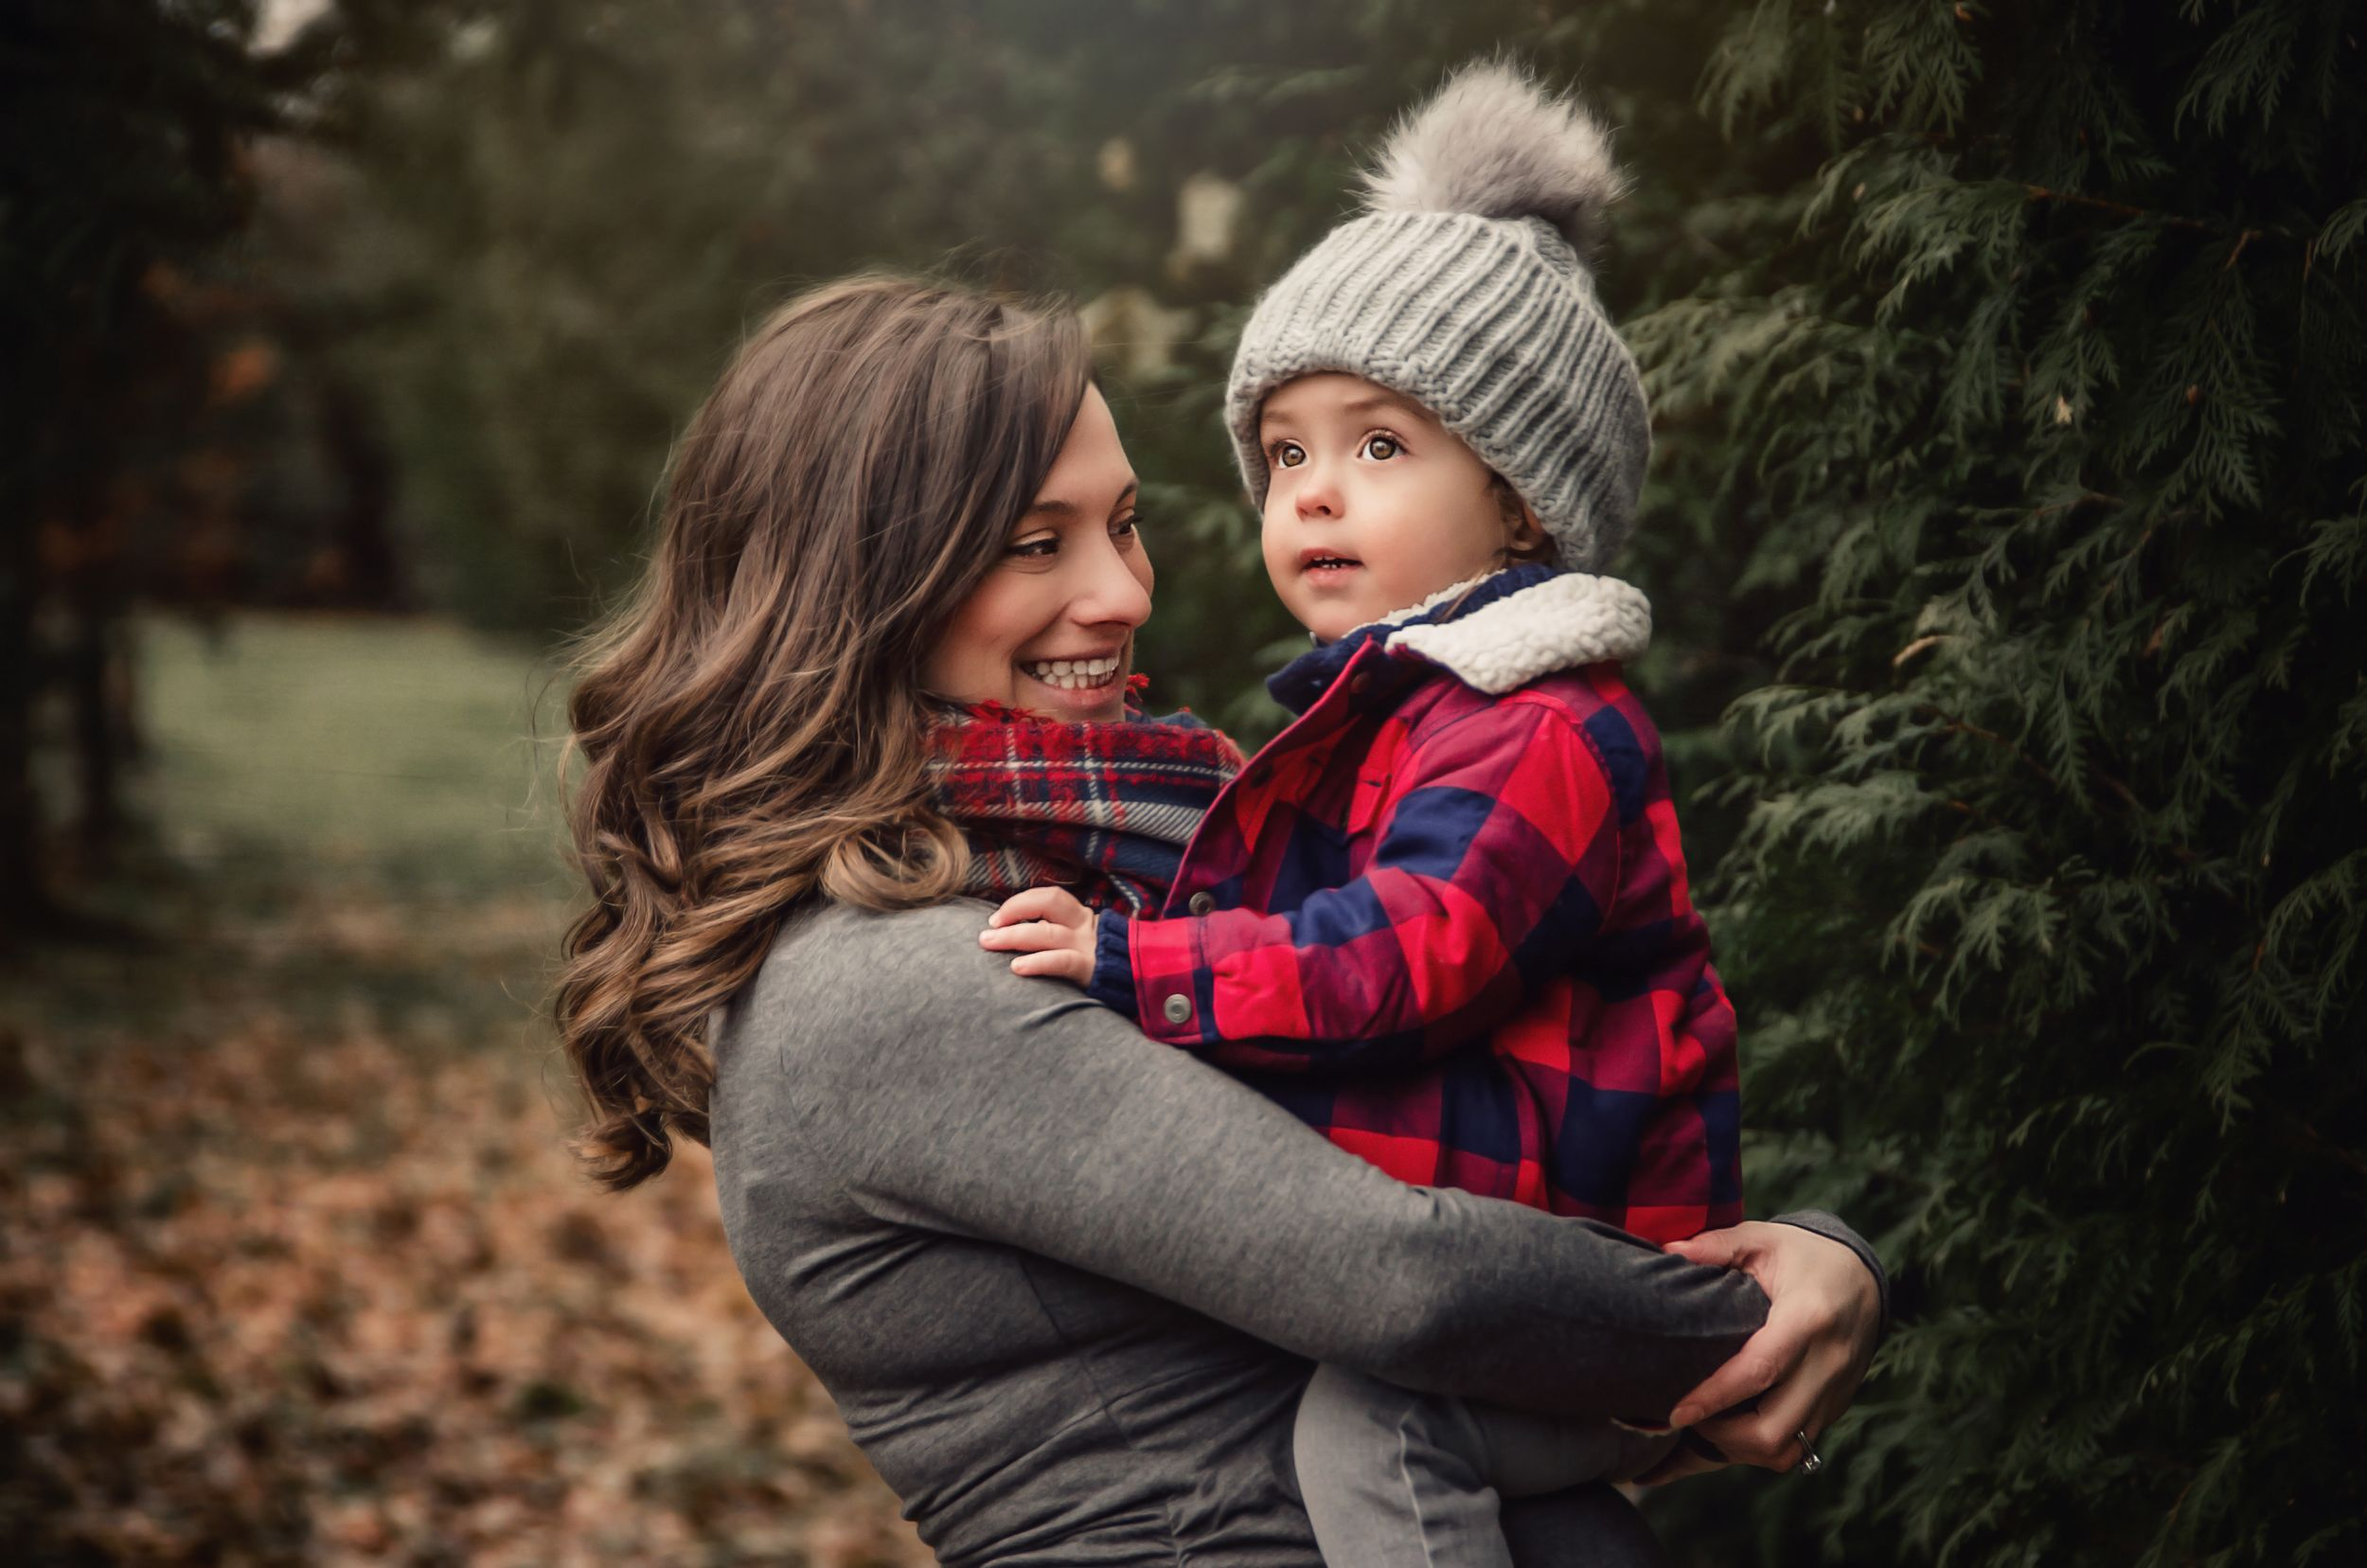 Family | Fine Art Portrait Photographer located in Cobourg, ON